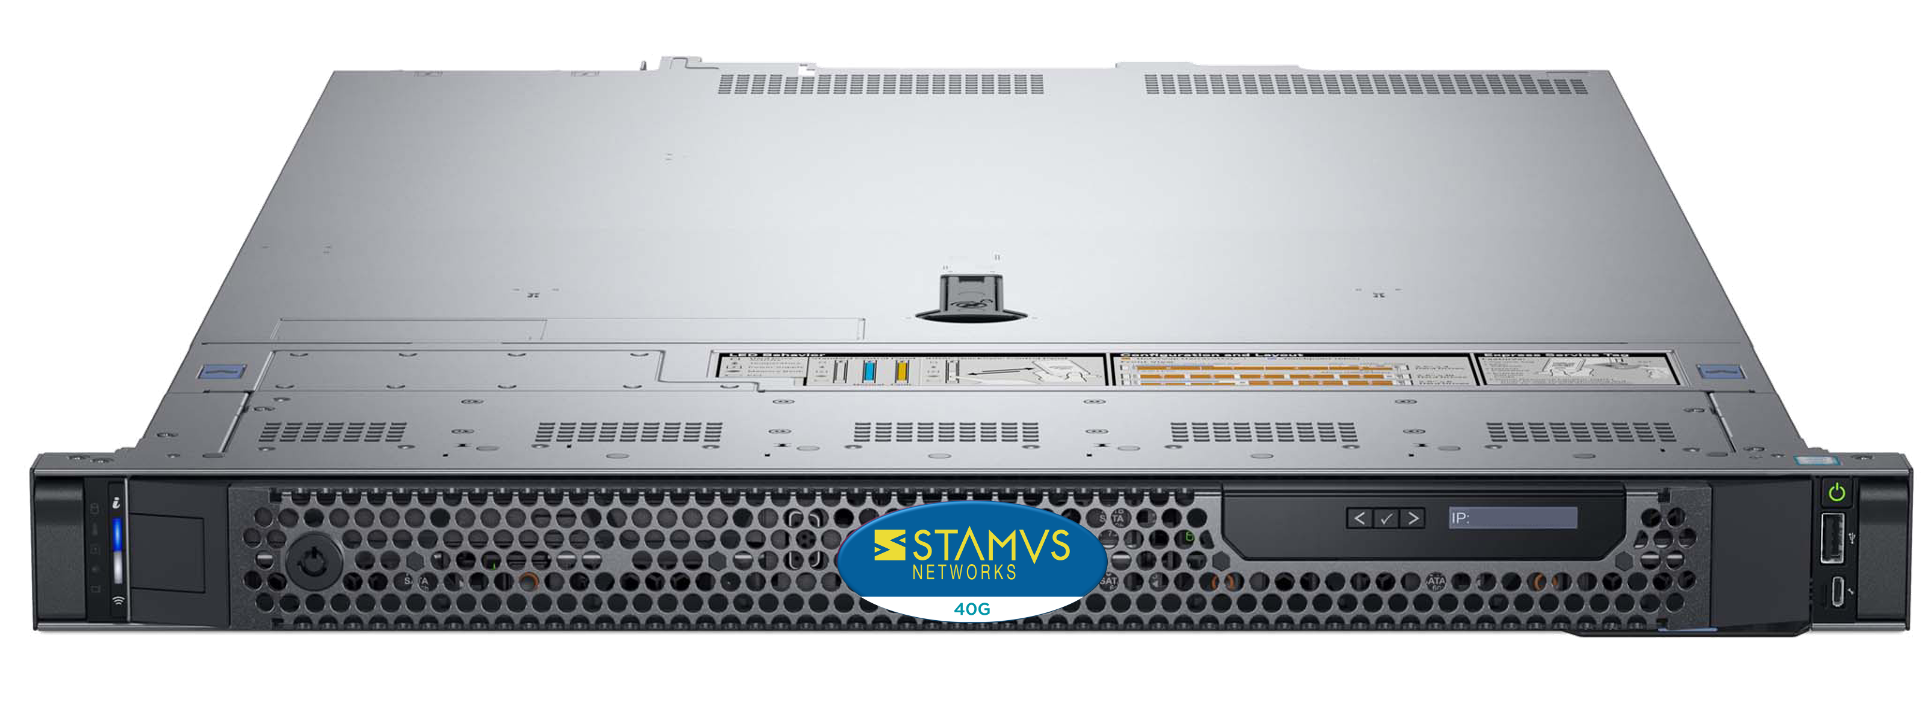 stamus_appliance_40G_1